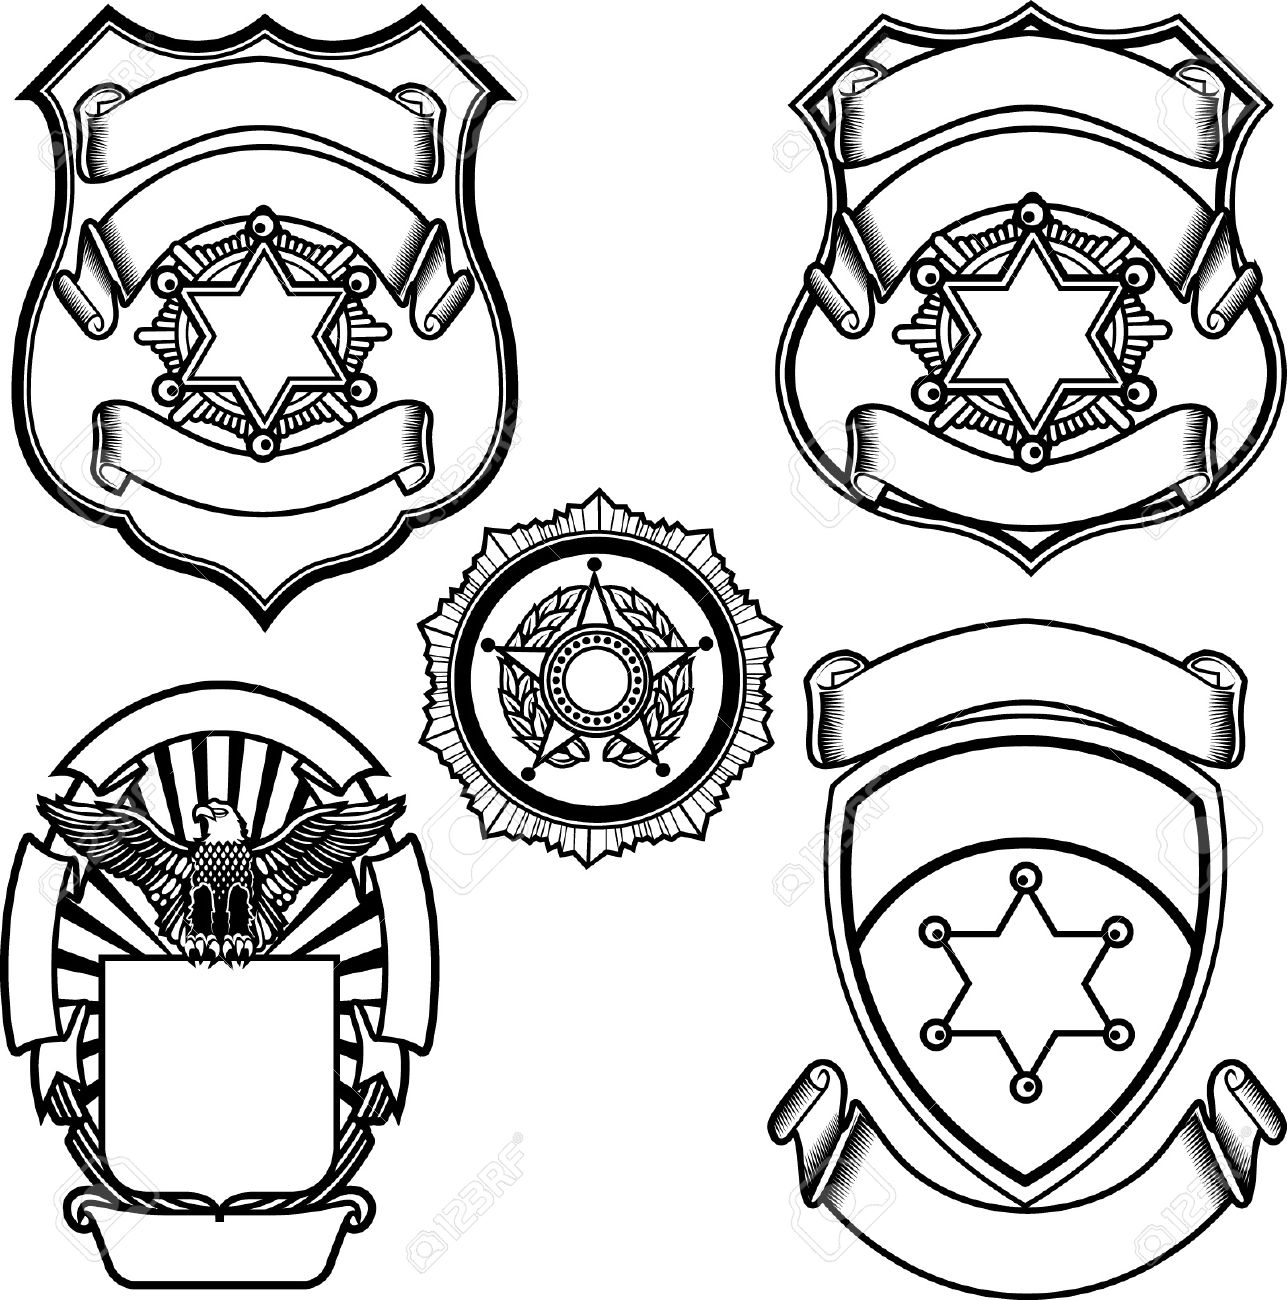 image relating to Printable Police Badges known as Absolutely free Printable Law enforcement Badge Template Absolutely free down load easiest